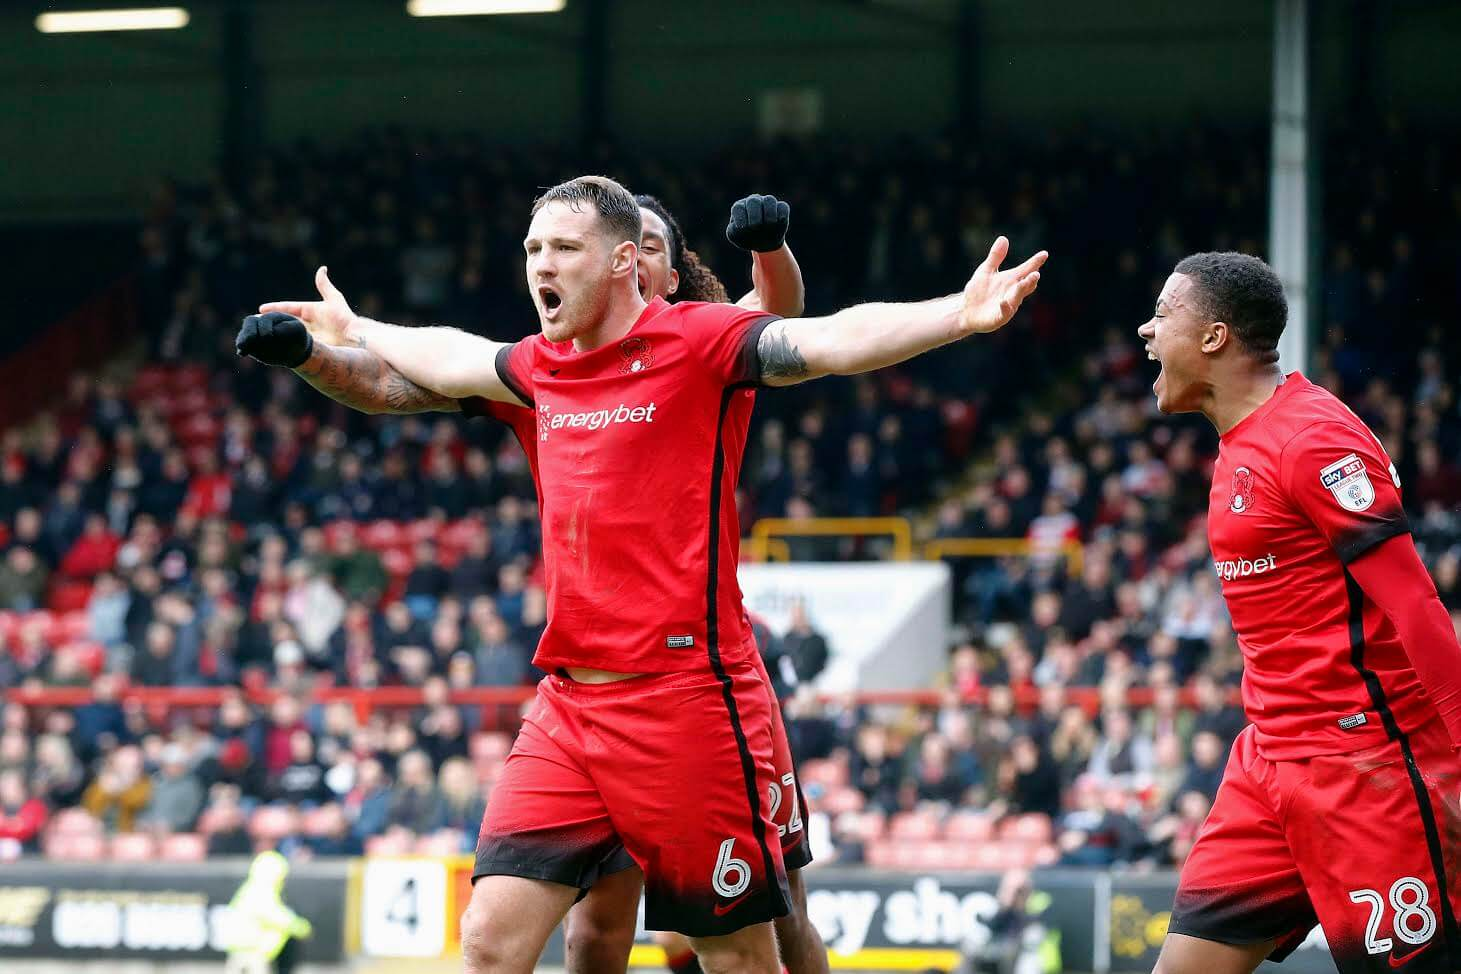 Rovers Score 4 And Inflict Another Defeat On The O's